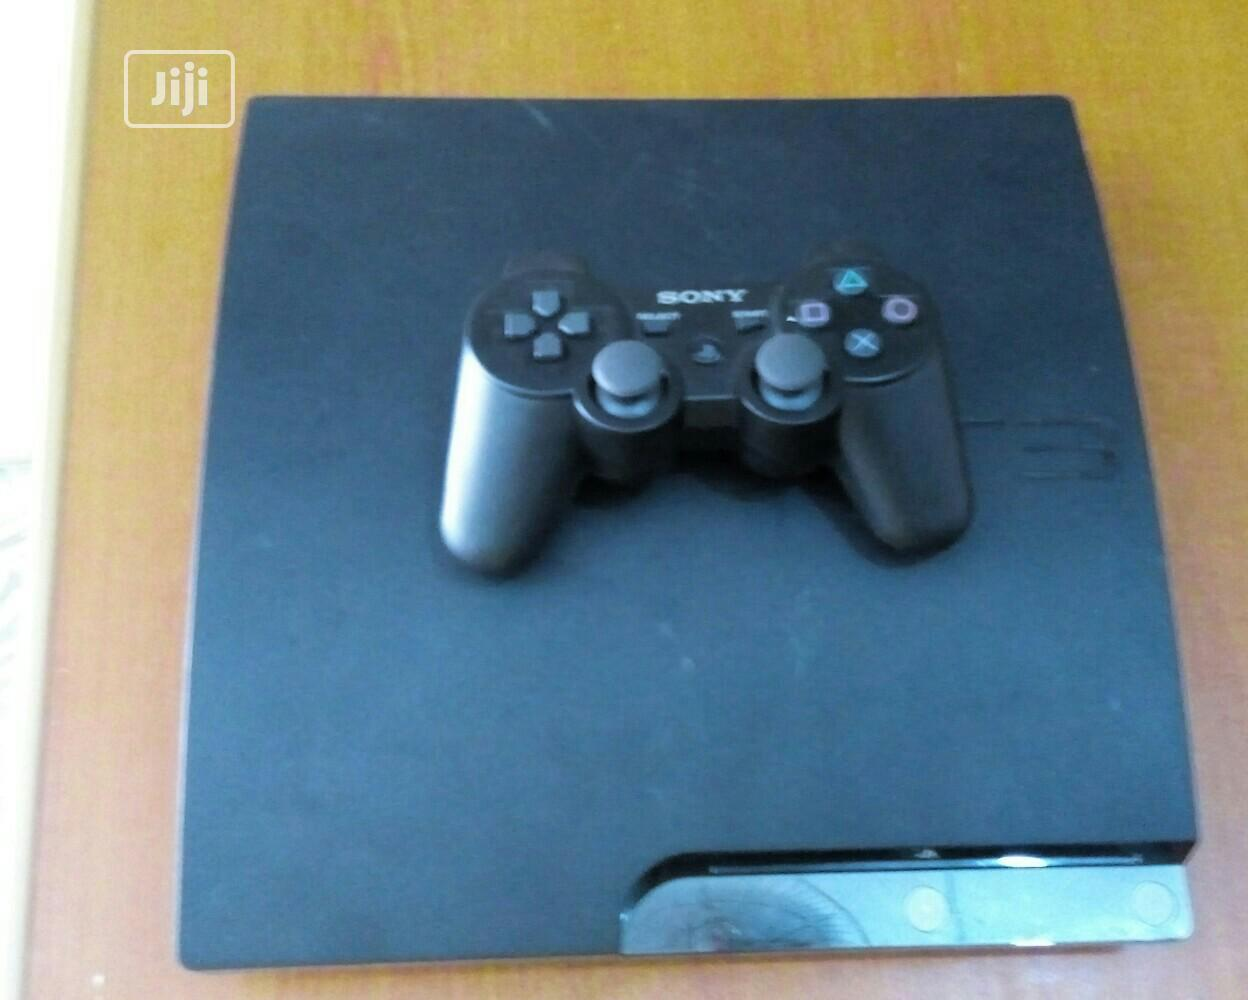 Sony Playstation 3 Console (Slim)With One Pad And Games Insi